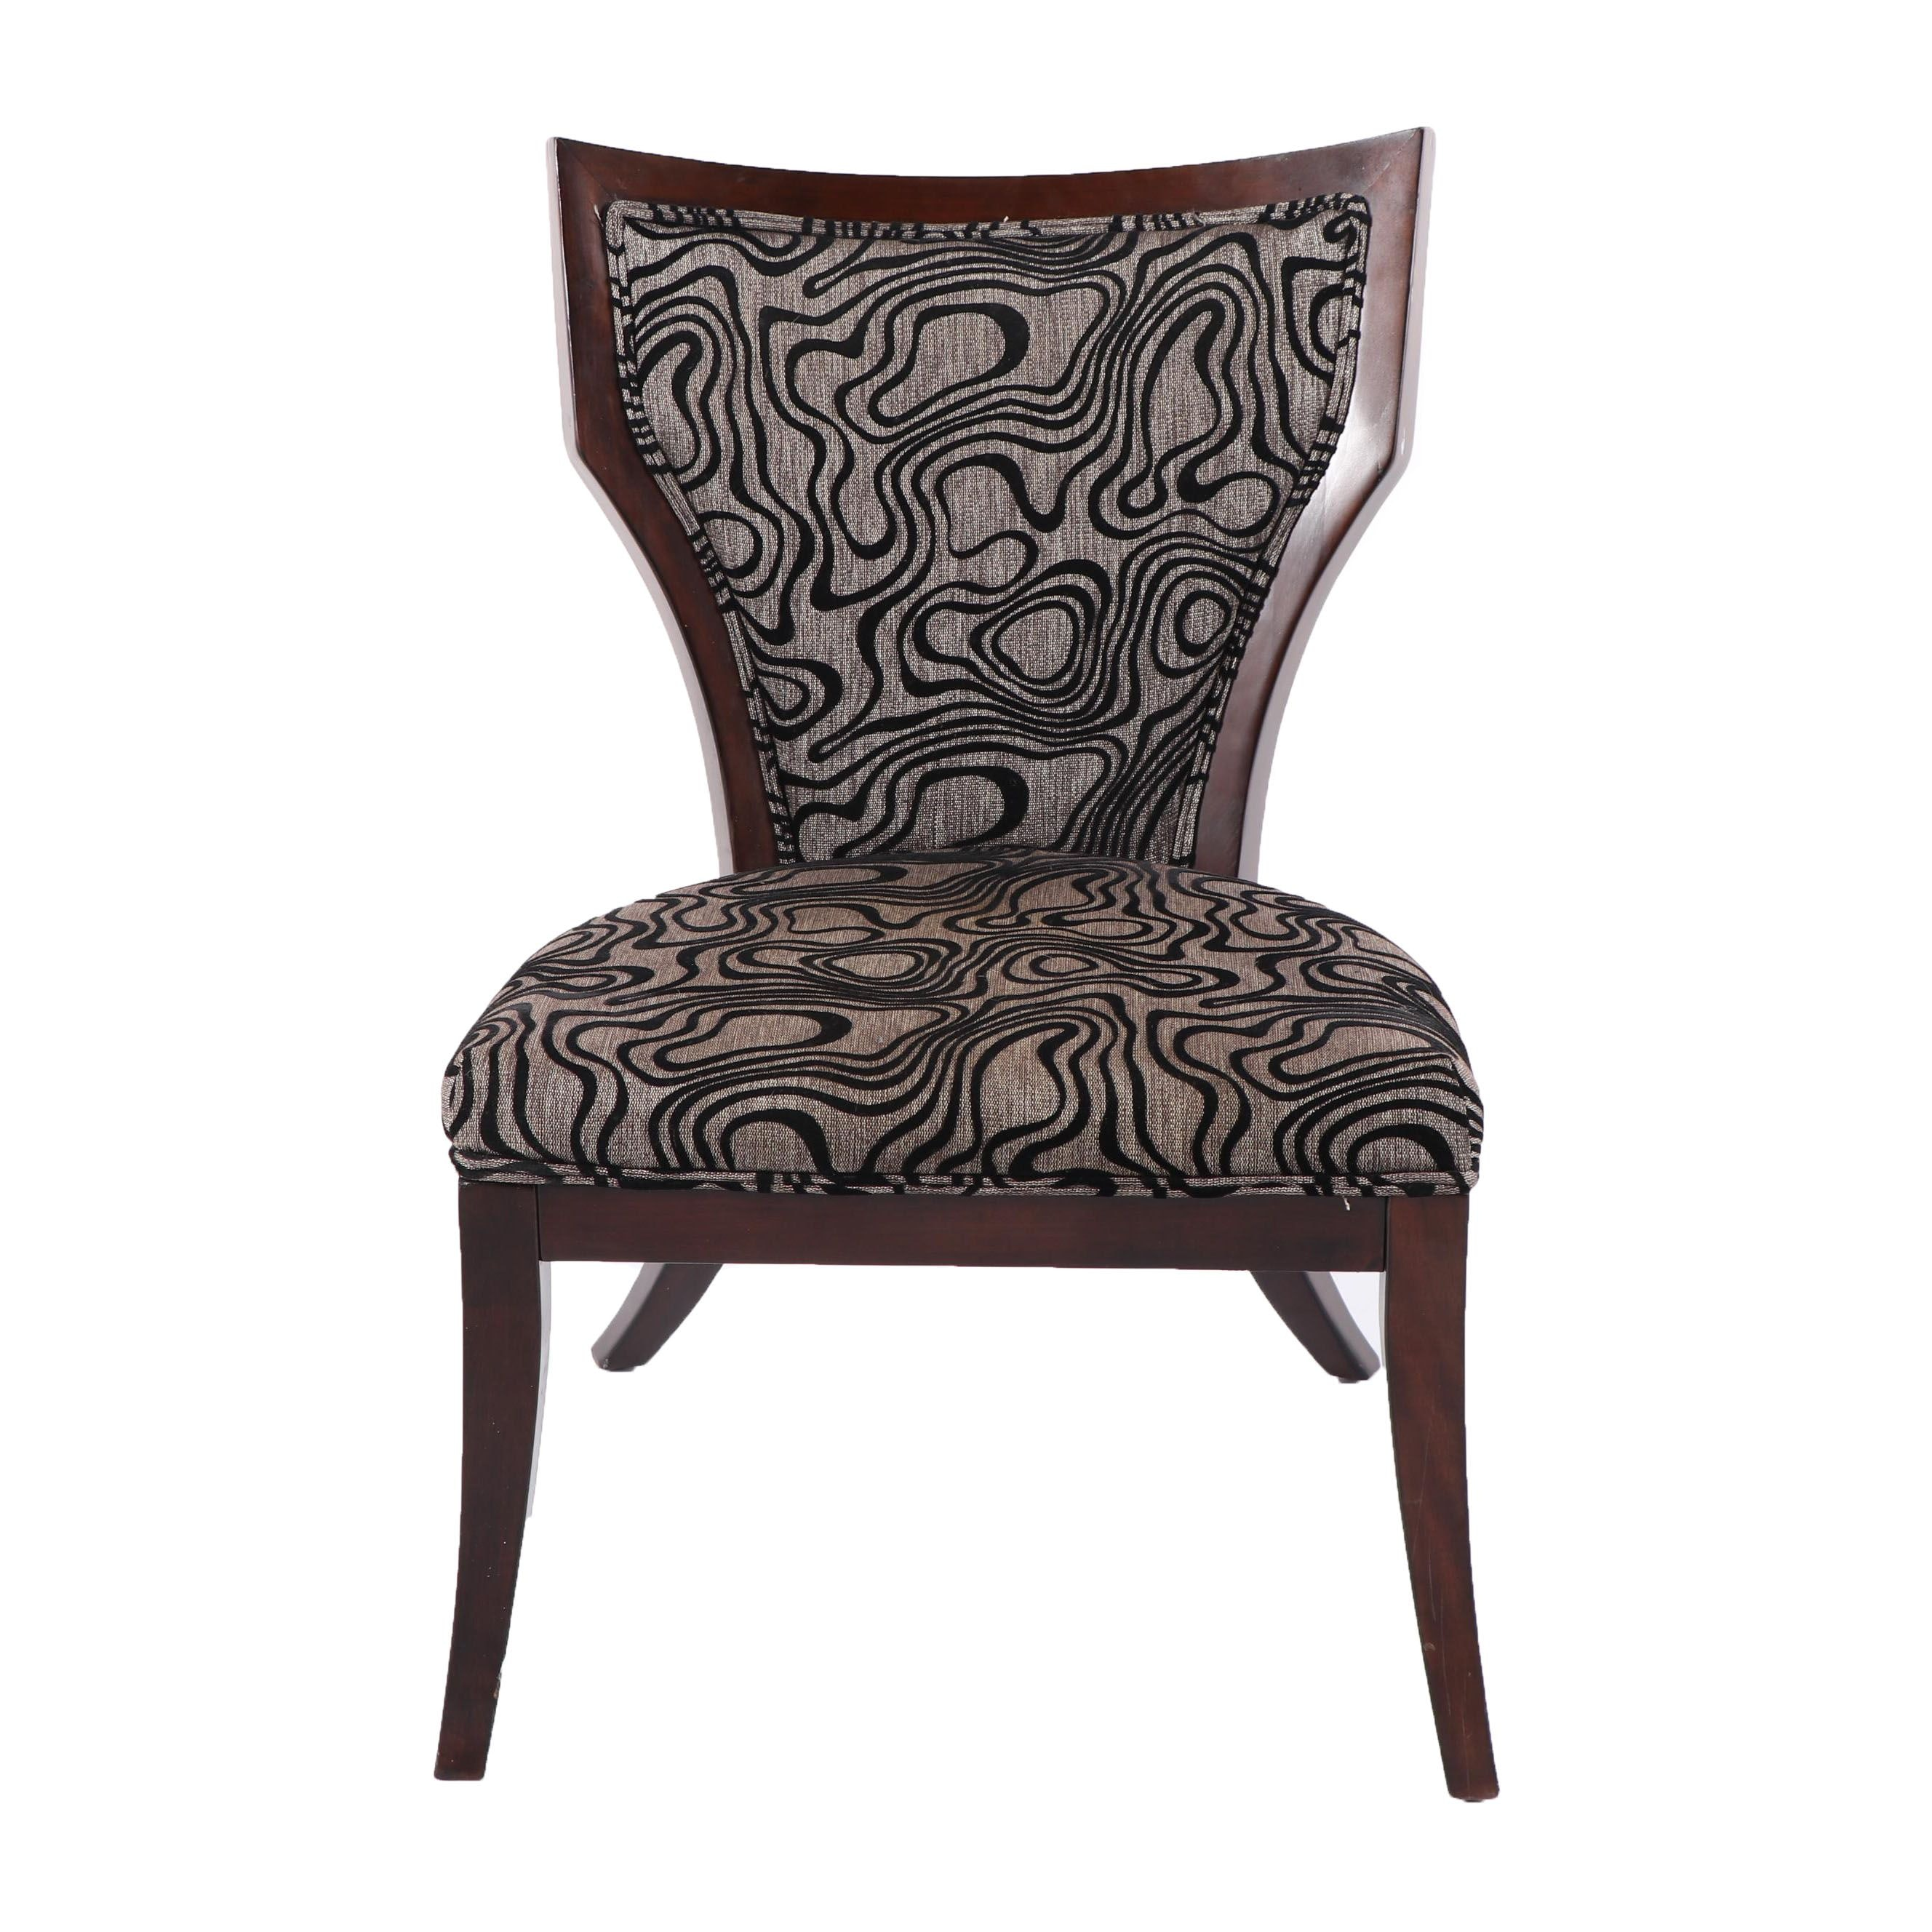 Grey and Black Upholstered Klismos Style Chair